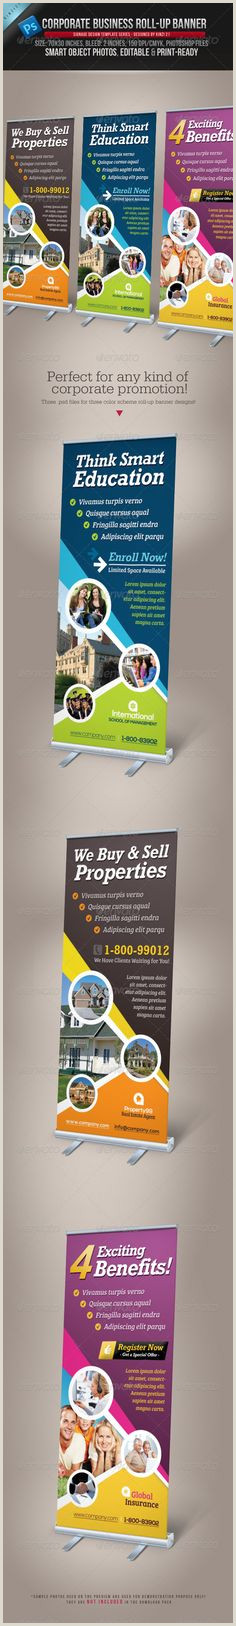 Retractable Displays Roll Ups 30 Best Roll Up Banners Images